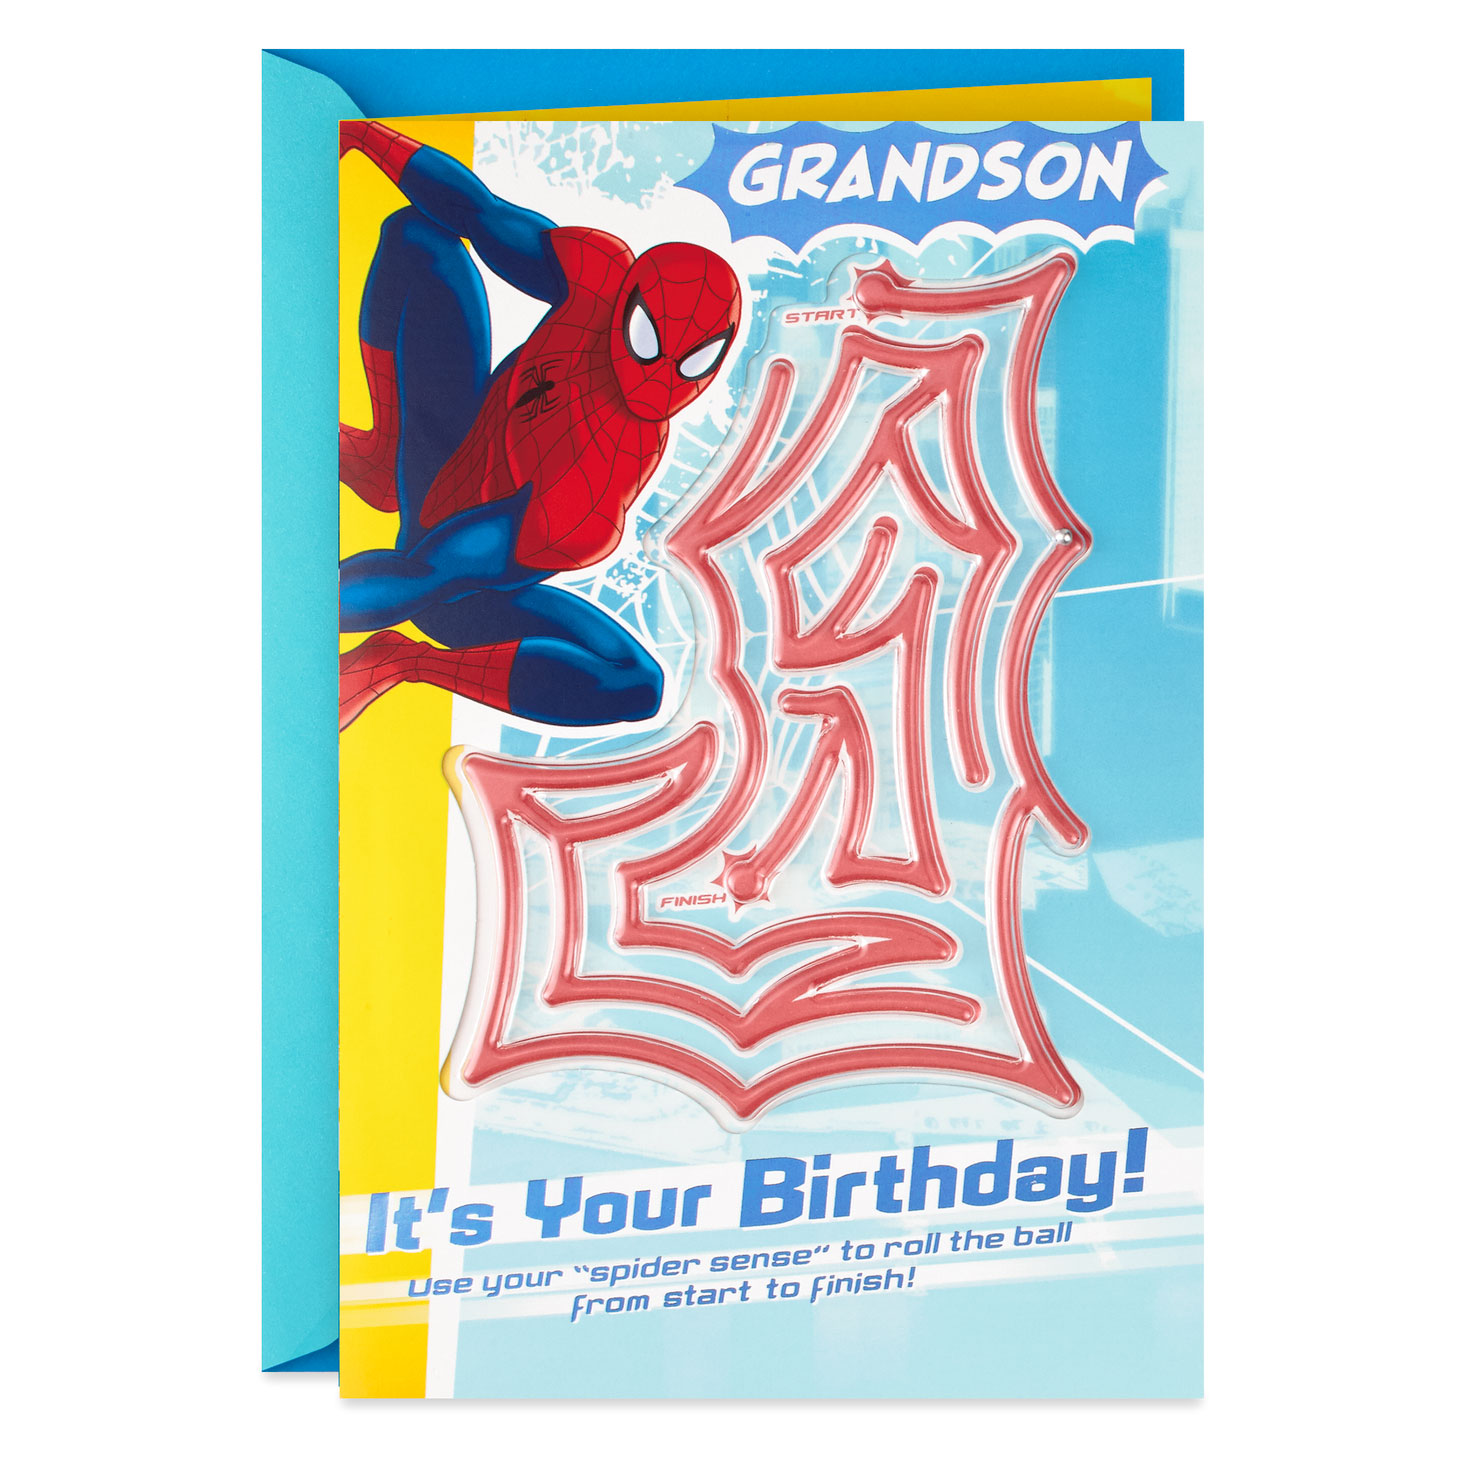 marvel spiderman birthday card for grandson with pinball